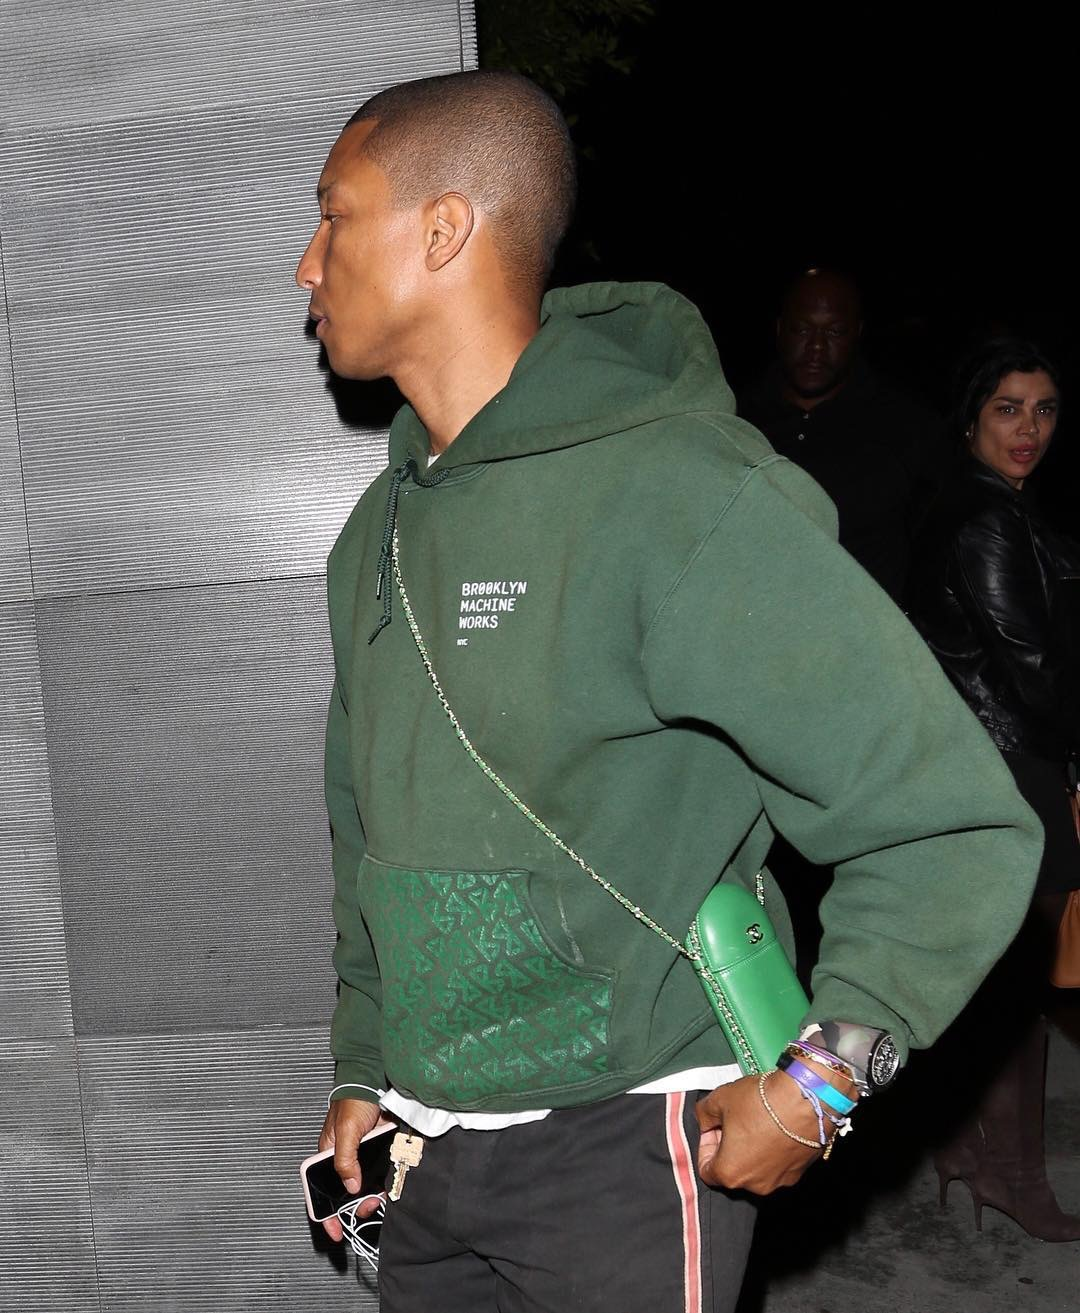 SPOTTED: Pharrell Williams In Brooklyn Machine Works Hoodie And Chanel Bag